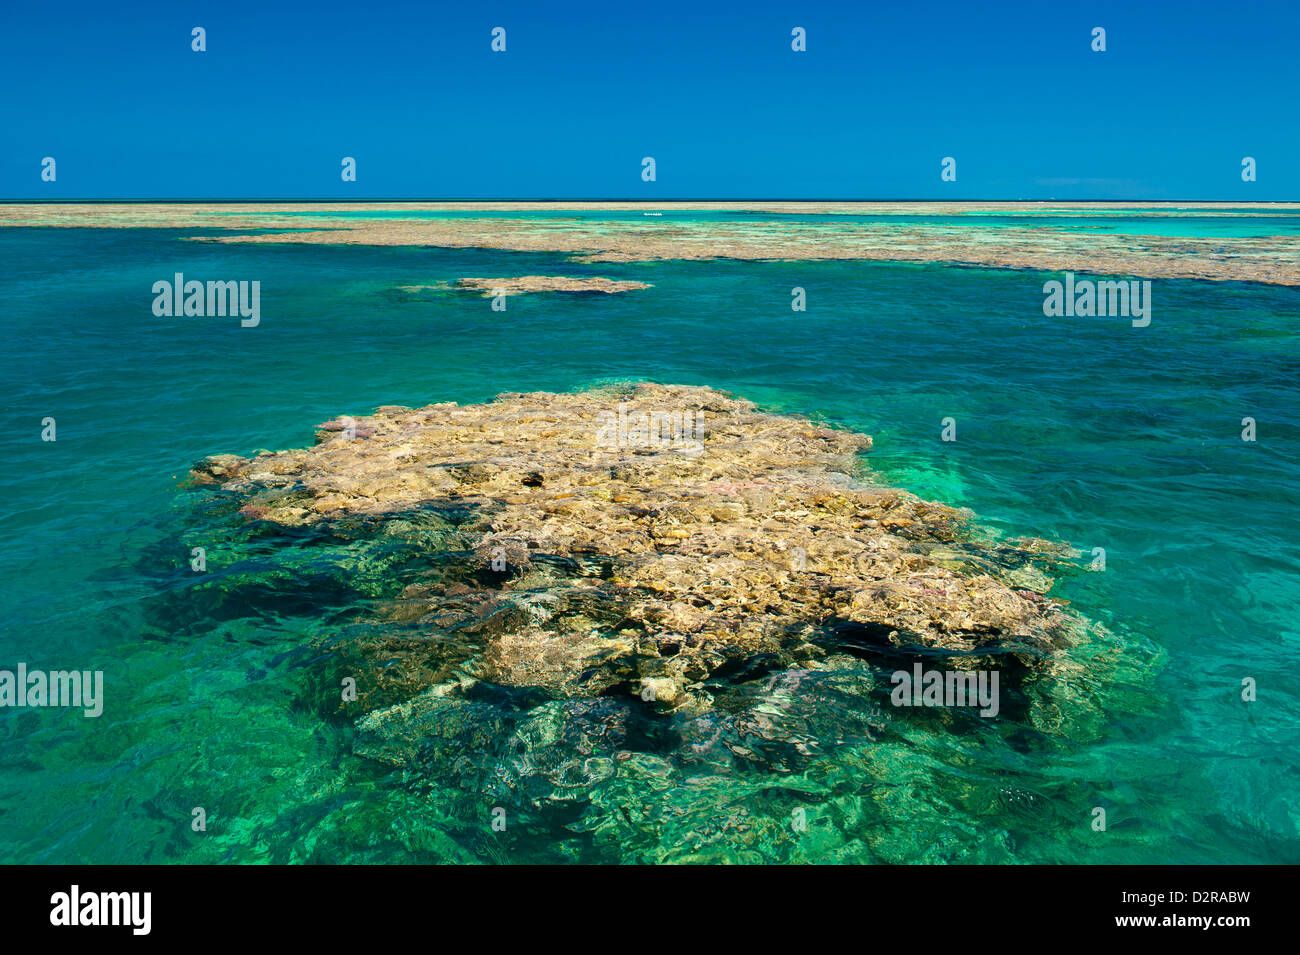 Aerial of the Great Barrier Reef. UNESCO World Heritage Site, Queensland, Australia, Pacific - Stock Image